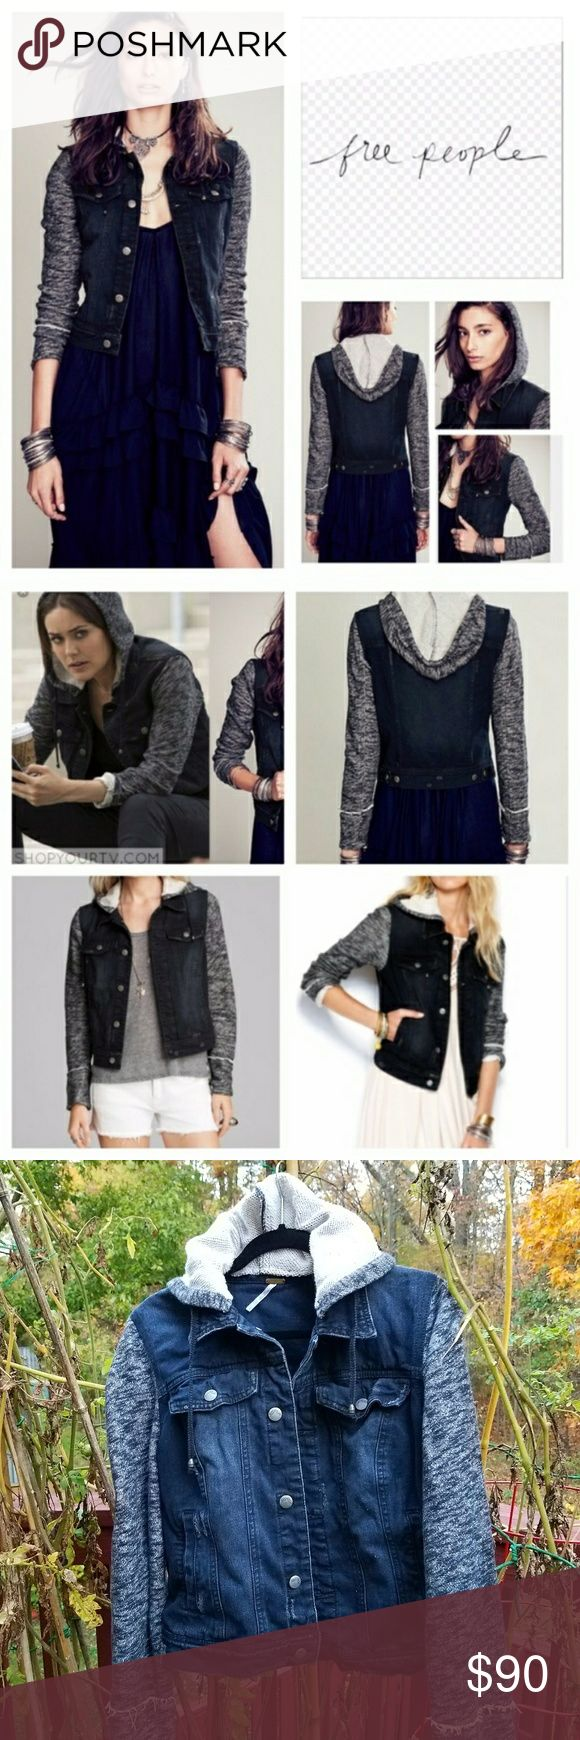 Free People Knit Hooded Distressed Denim Jacket L Very lightly worn! Free People Jackets & Coats